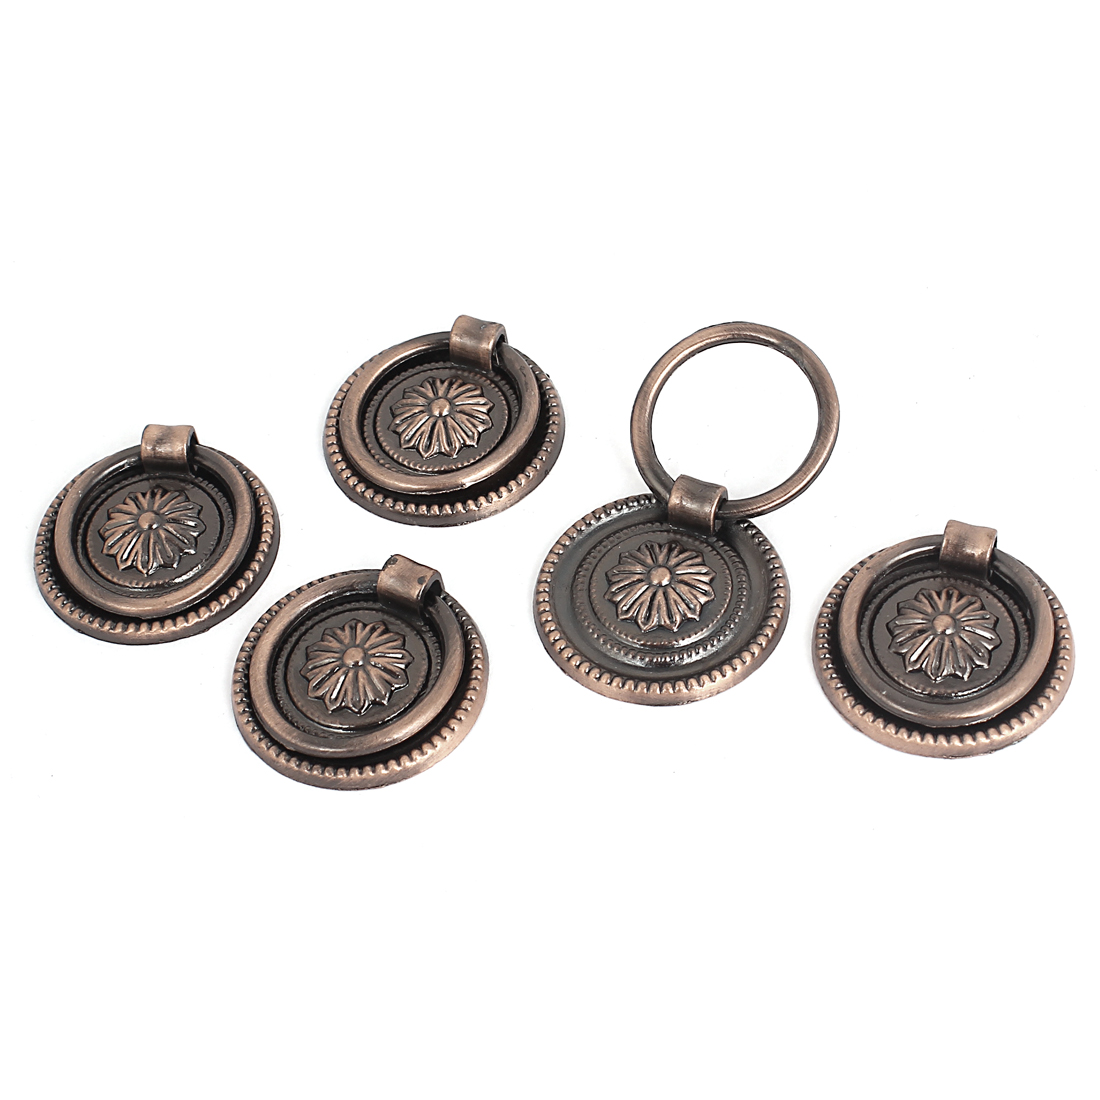 Cupboard Cabinet Drawer 36mm Dia Vintage Style Ring Pull Knob Handle 5 Pcs